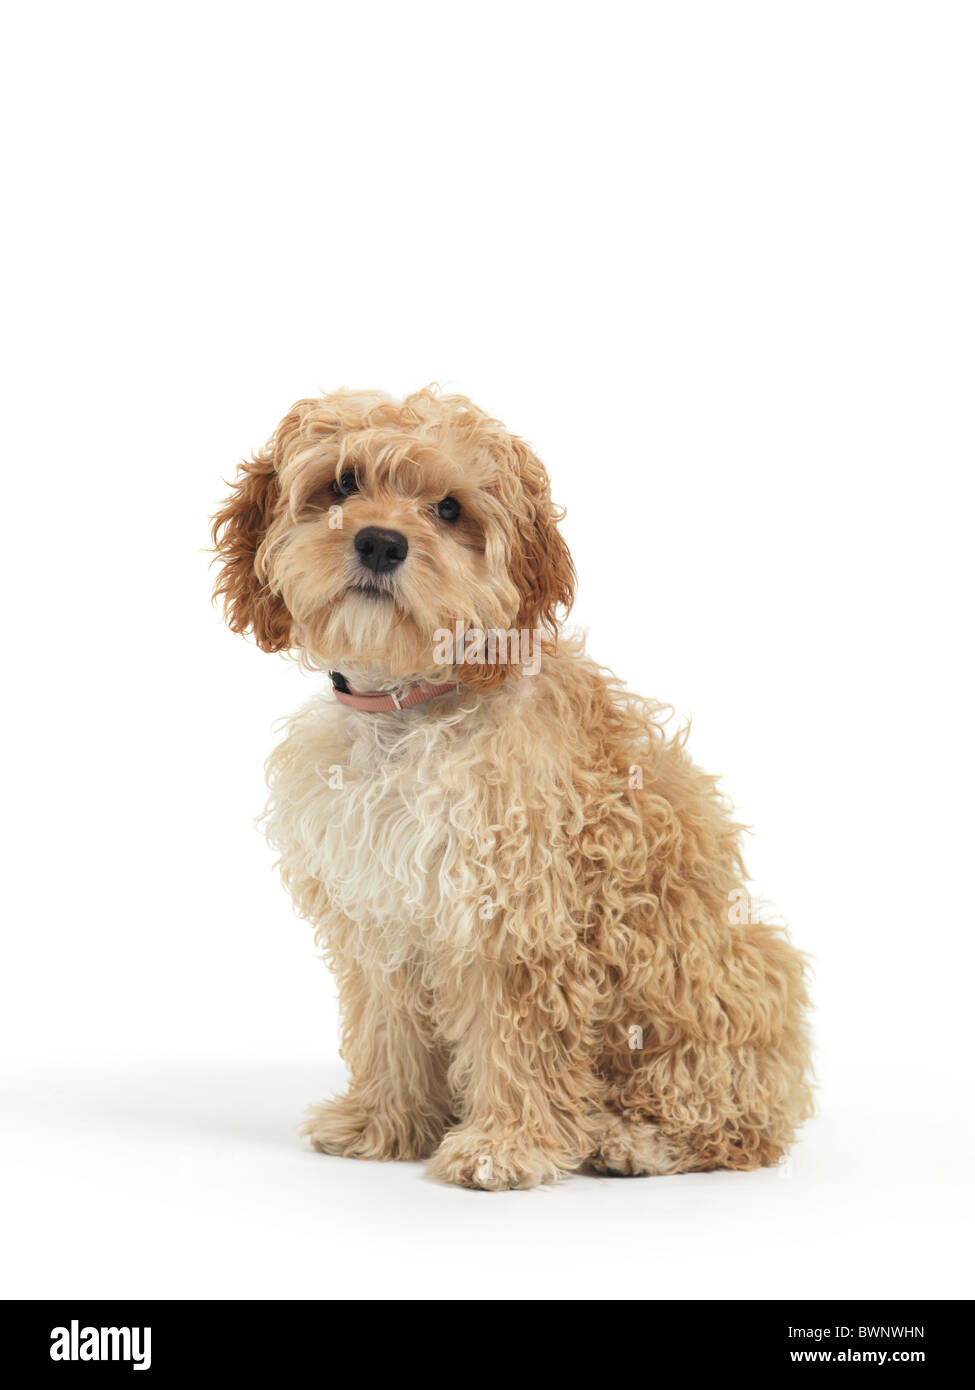 Cockapoo cute cross breed dog of cocker spaniel and a poodle isolated on white background - Stock Image